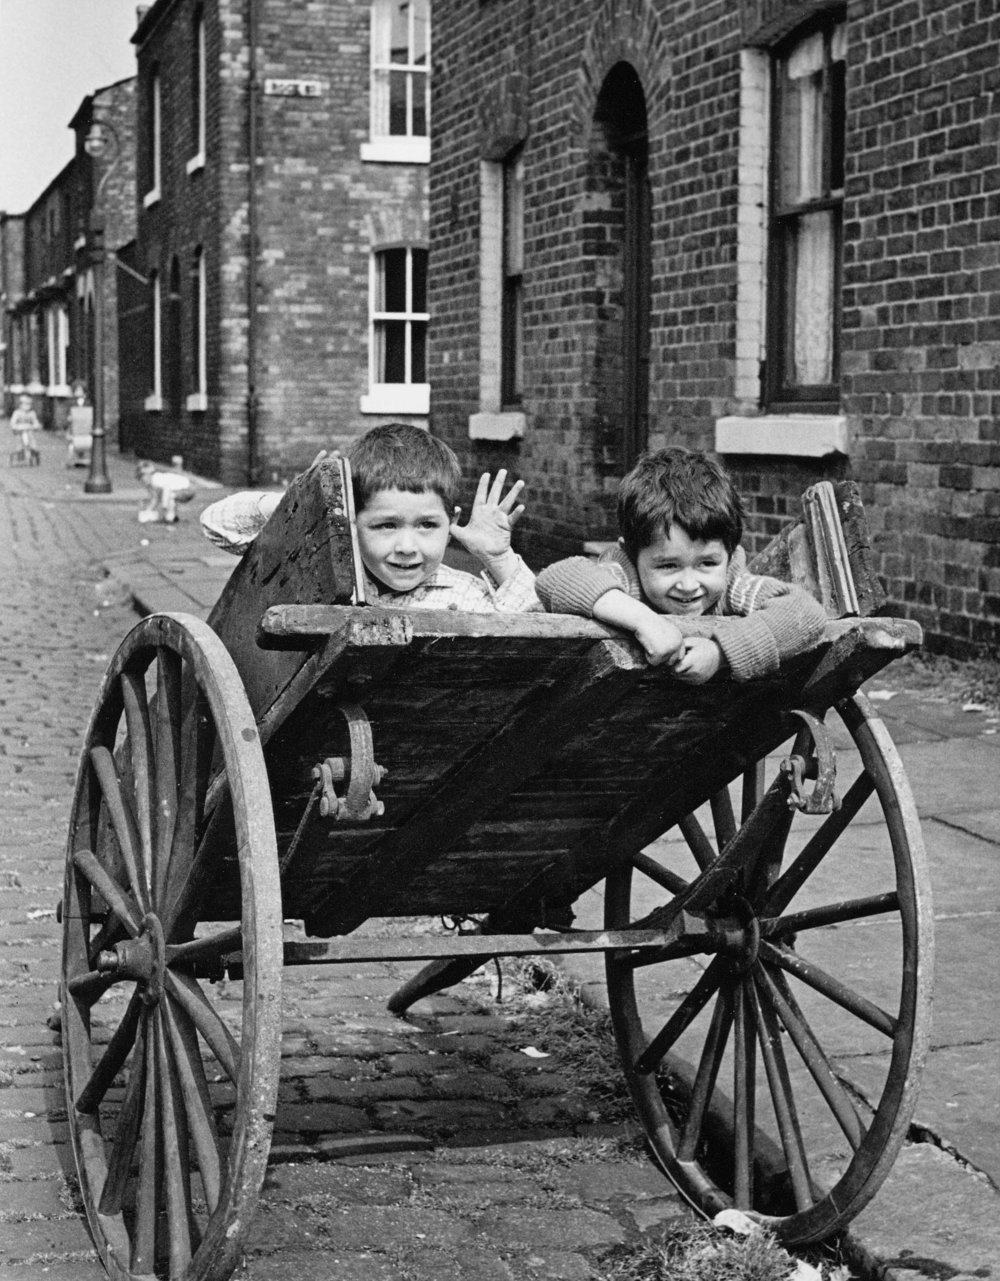 Kids in Cart, Salford (1962)